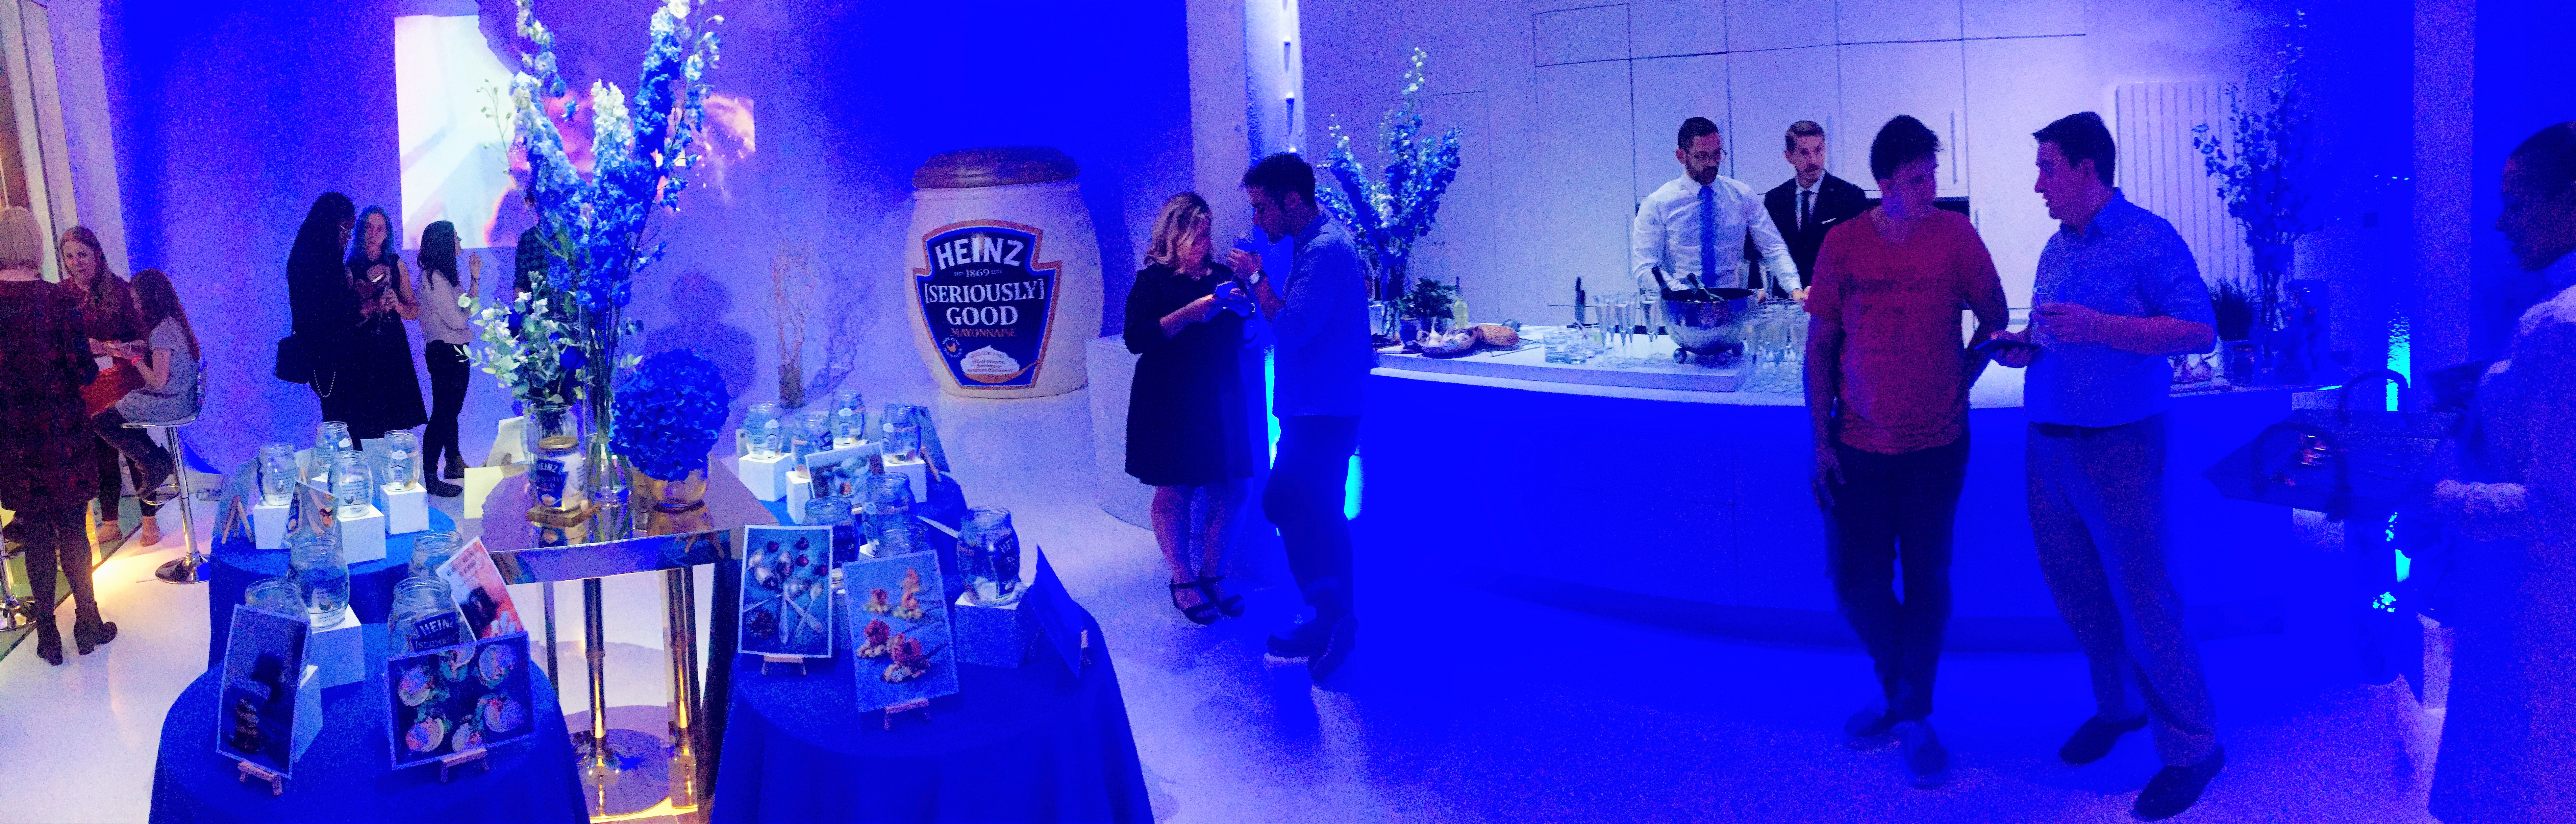 #Heinz Seriously Good mayonnaise launch